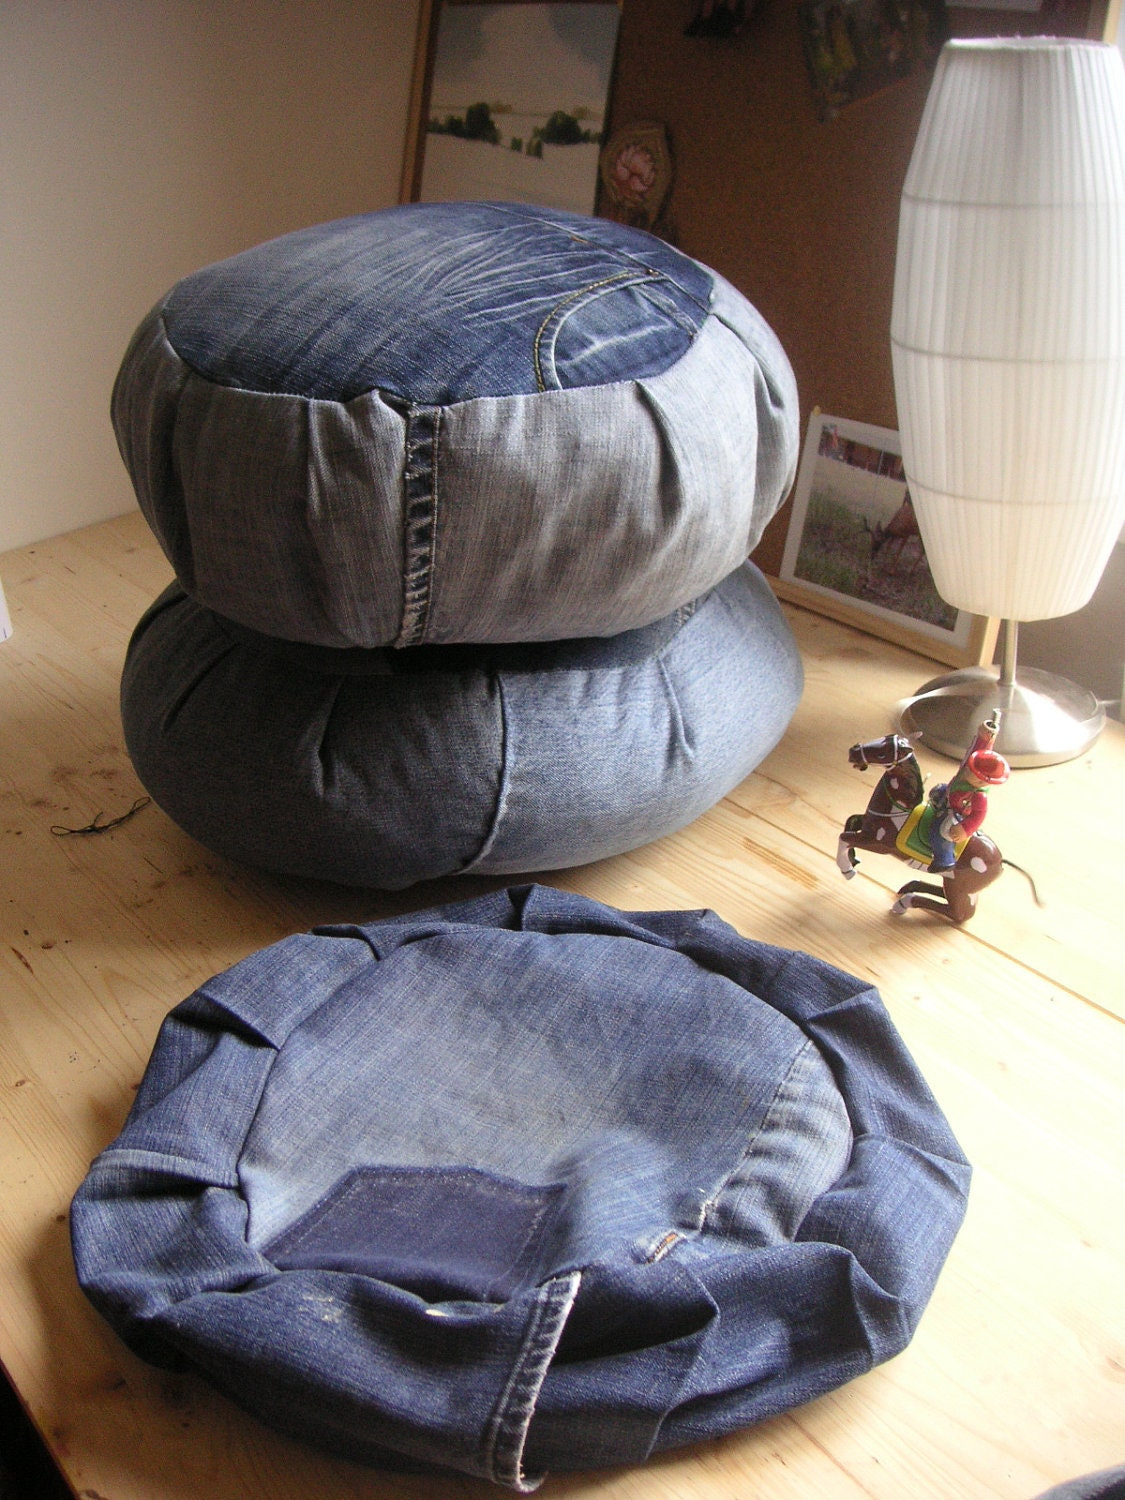 Diy Denim Zafu How To Instructions For Meditation Cushion